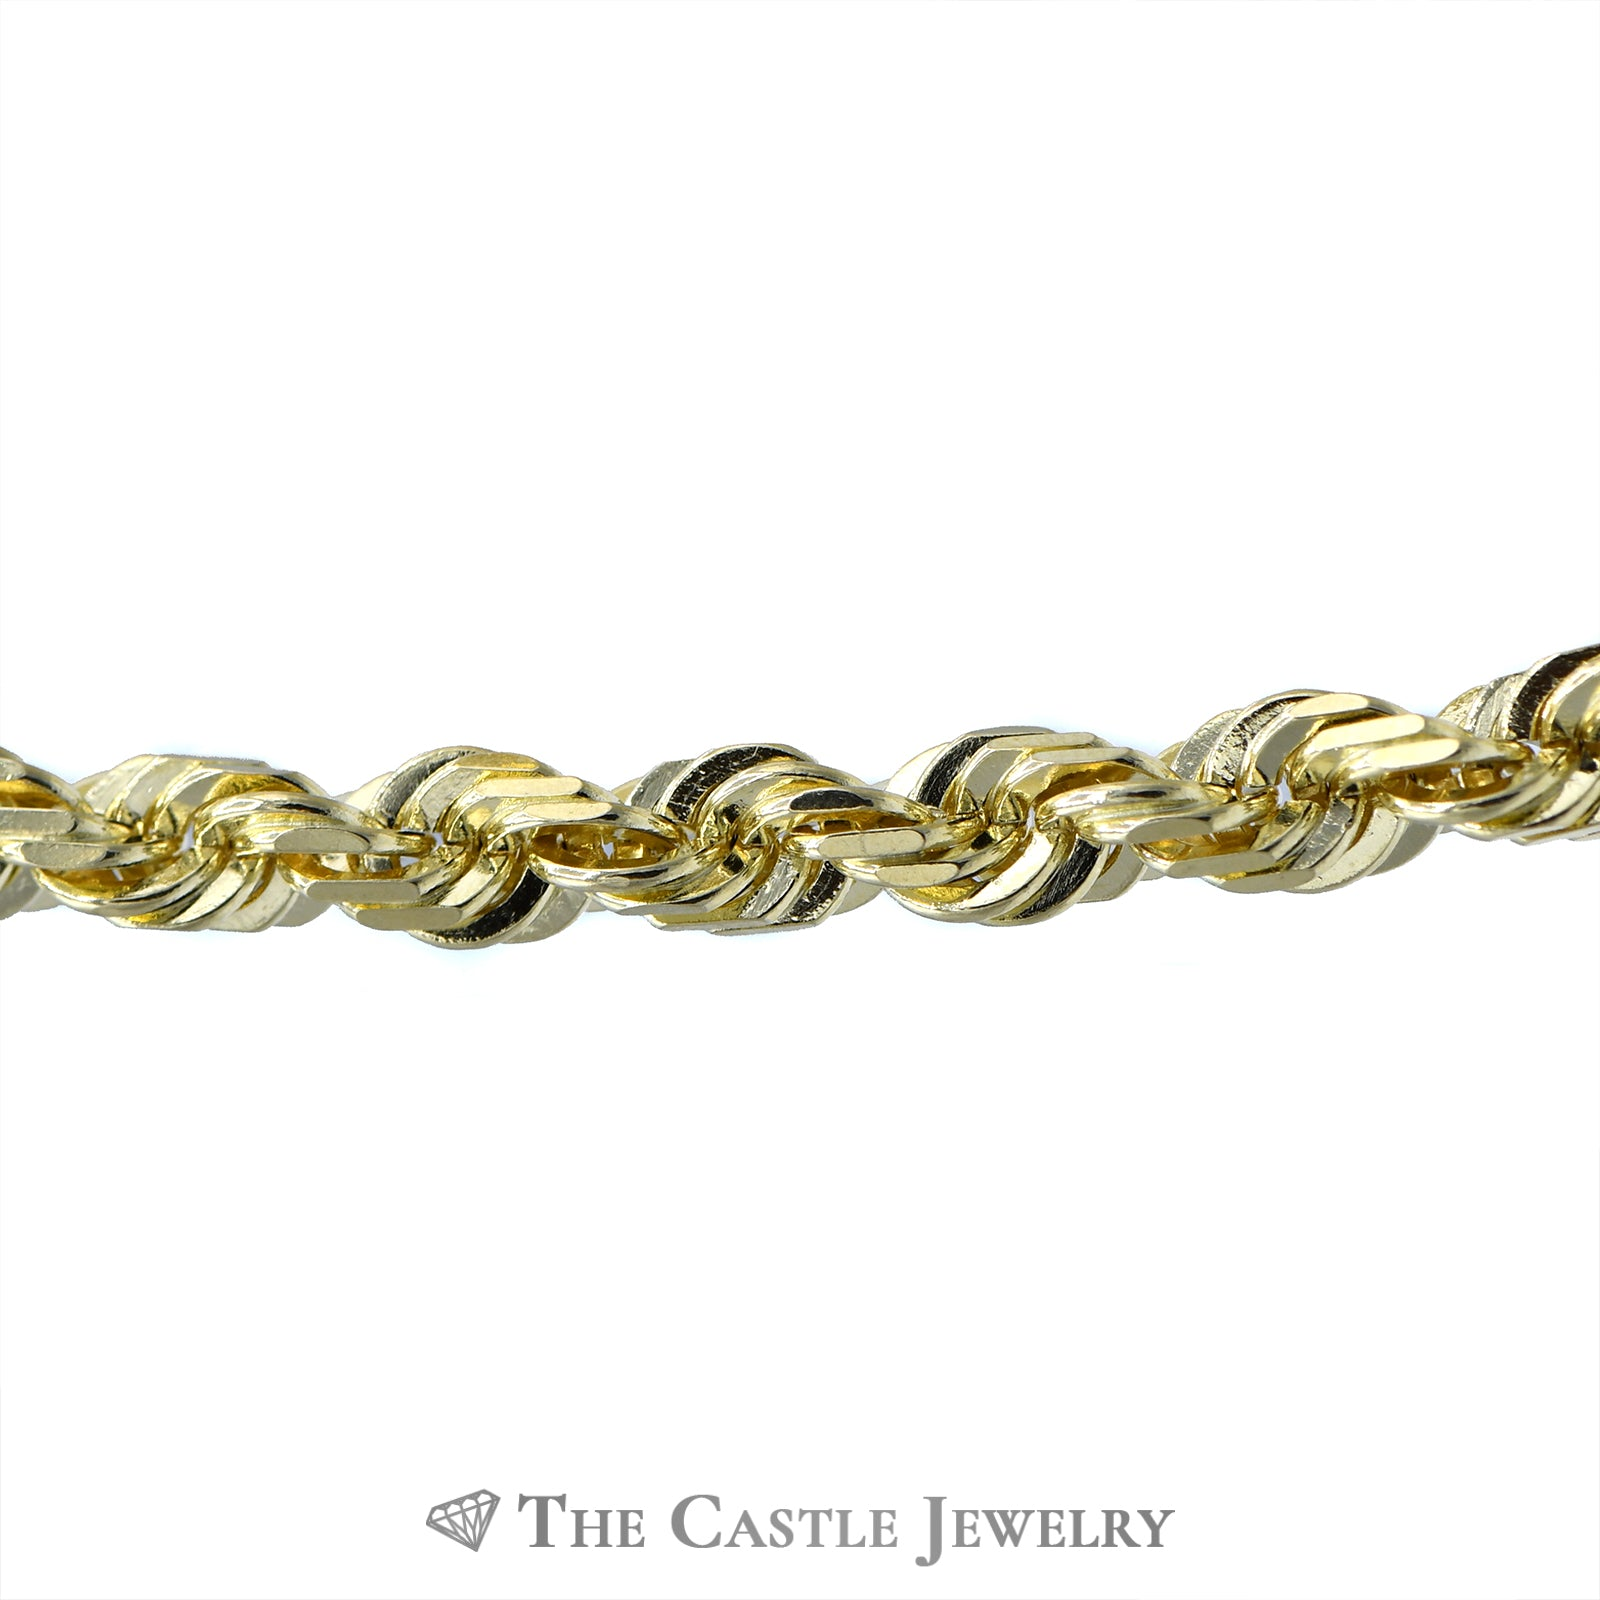 24 Inch Rope Chain with Lobster Clasp in 10k Yellow Gold-1